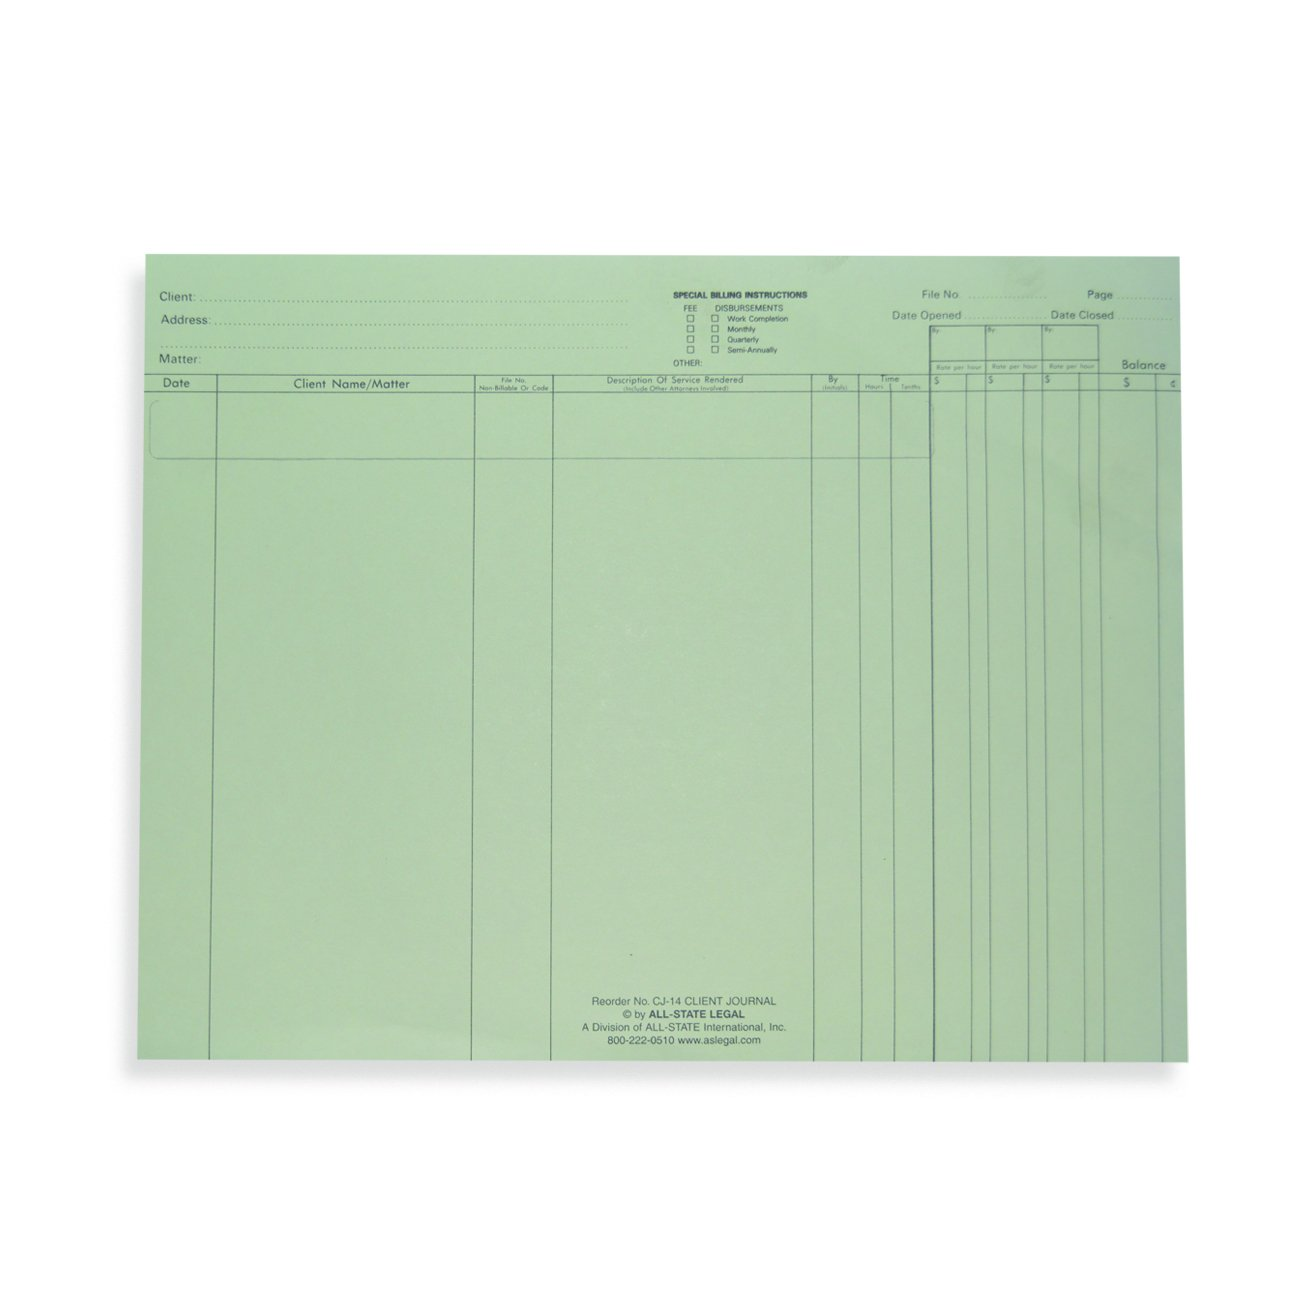 ALL-STATE LEGAL Client Journal Sheets for Time Record Systems, 11'' x 8 1/2'', Green Ledger, Printed, 100/PK